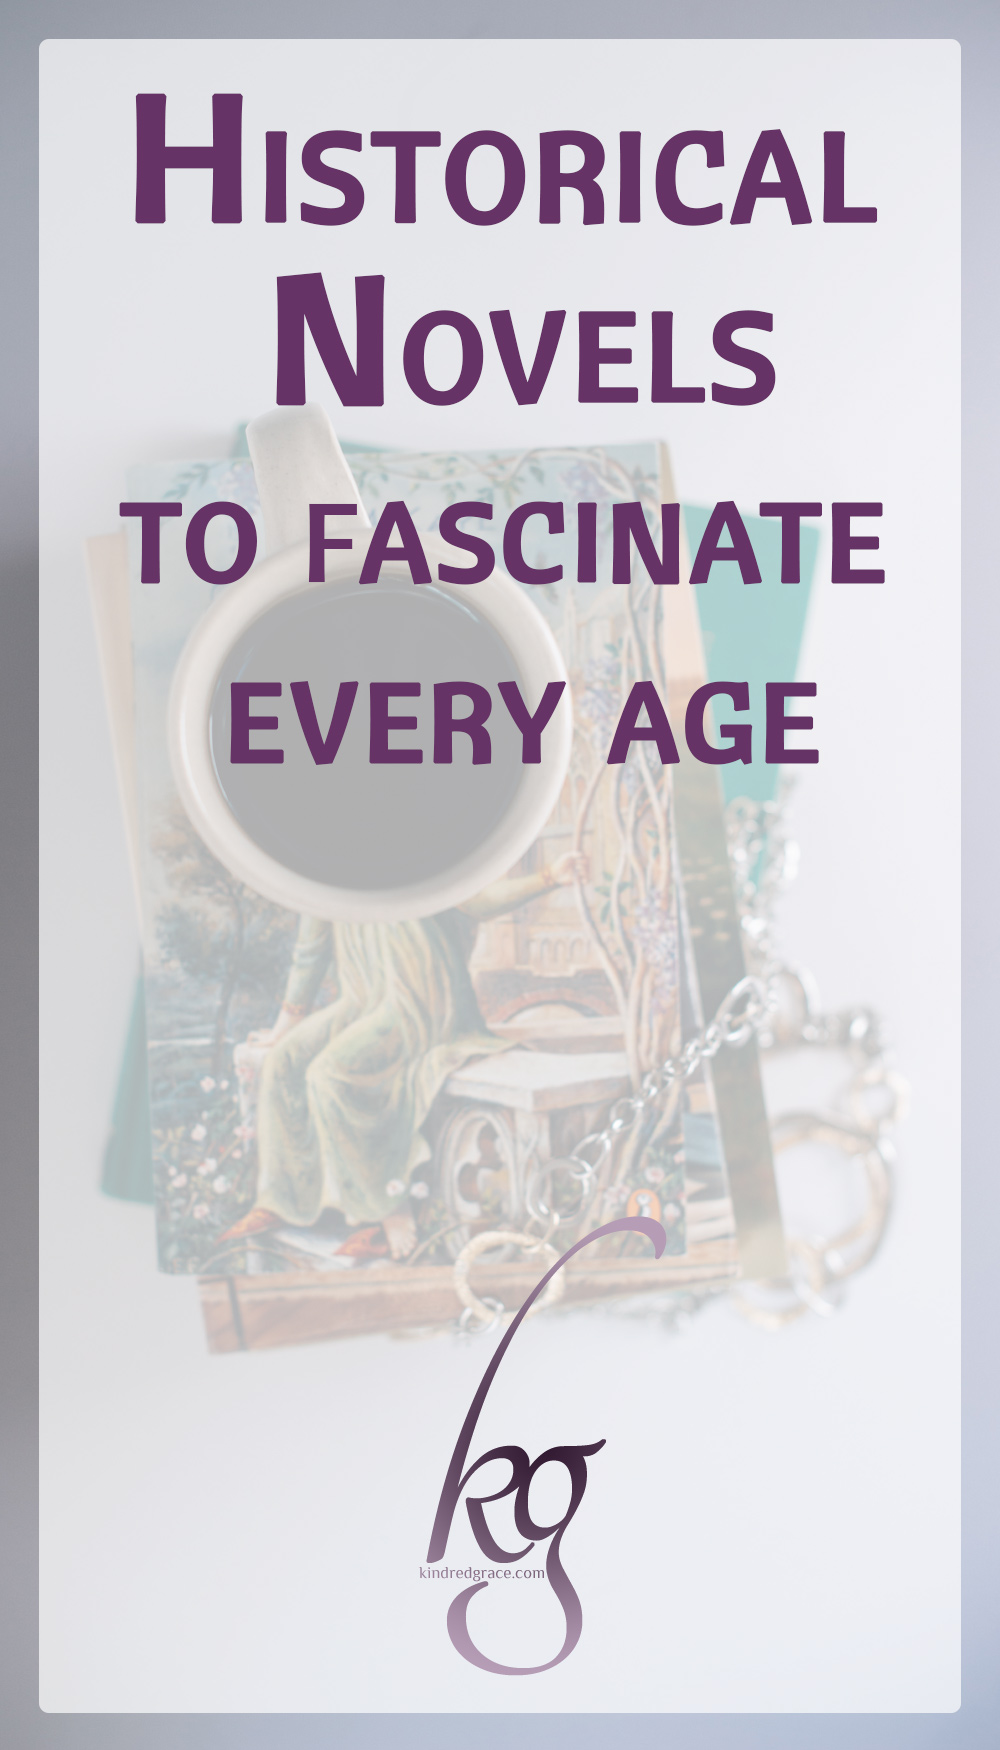 Whether you love historical fiction or you're searching for some books to suggest to or buy for your daughter or friend, I hope you find this list a springboard into a beautiful genre where time travel is made possible by good books. via @KindredGrace